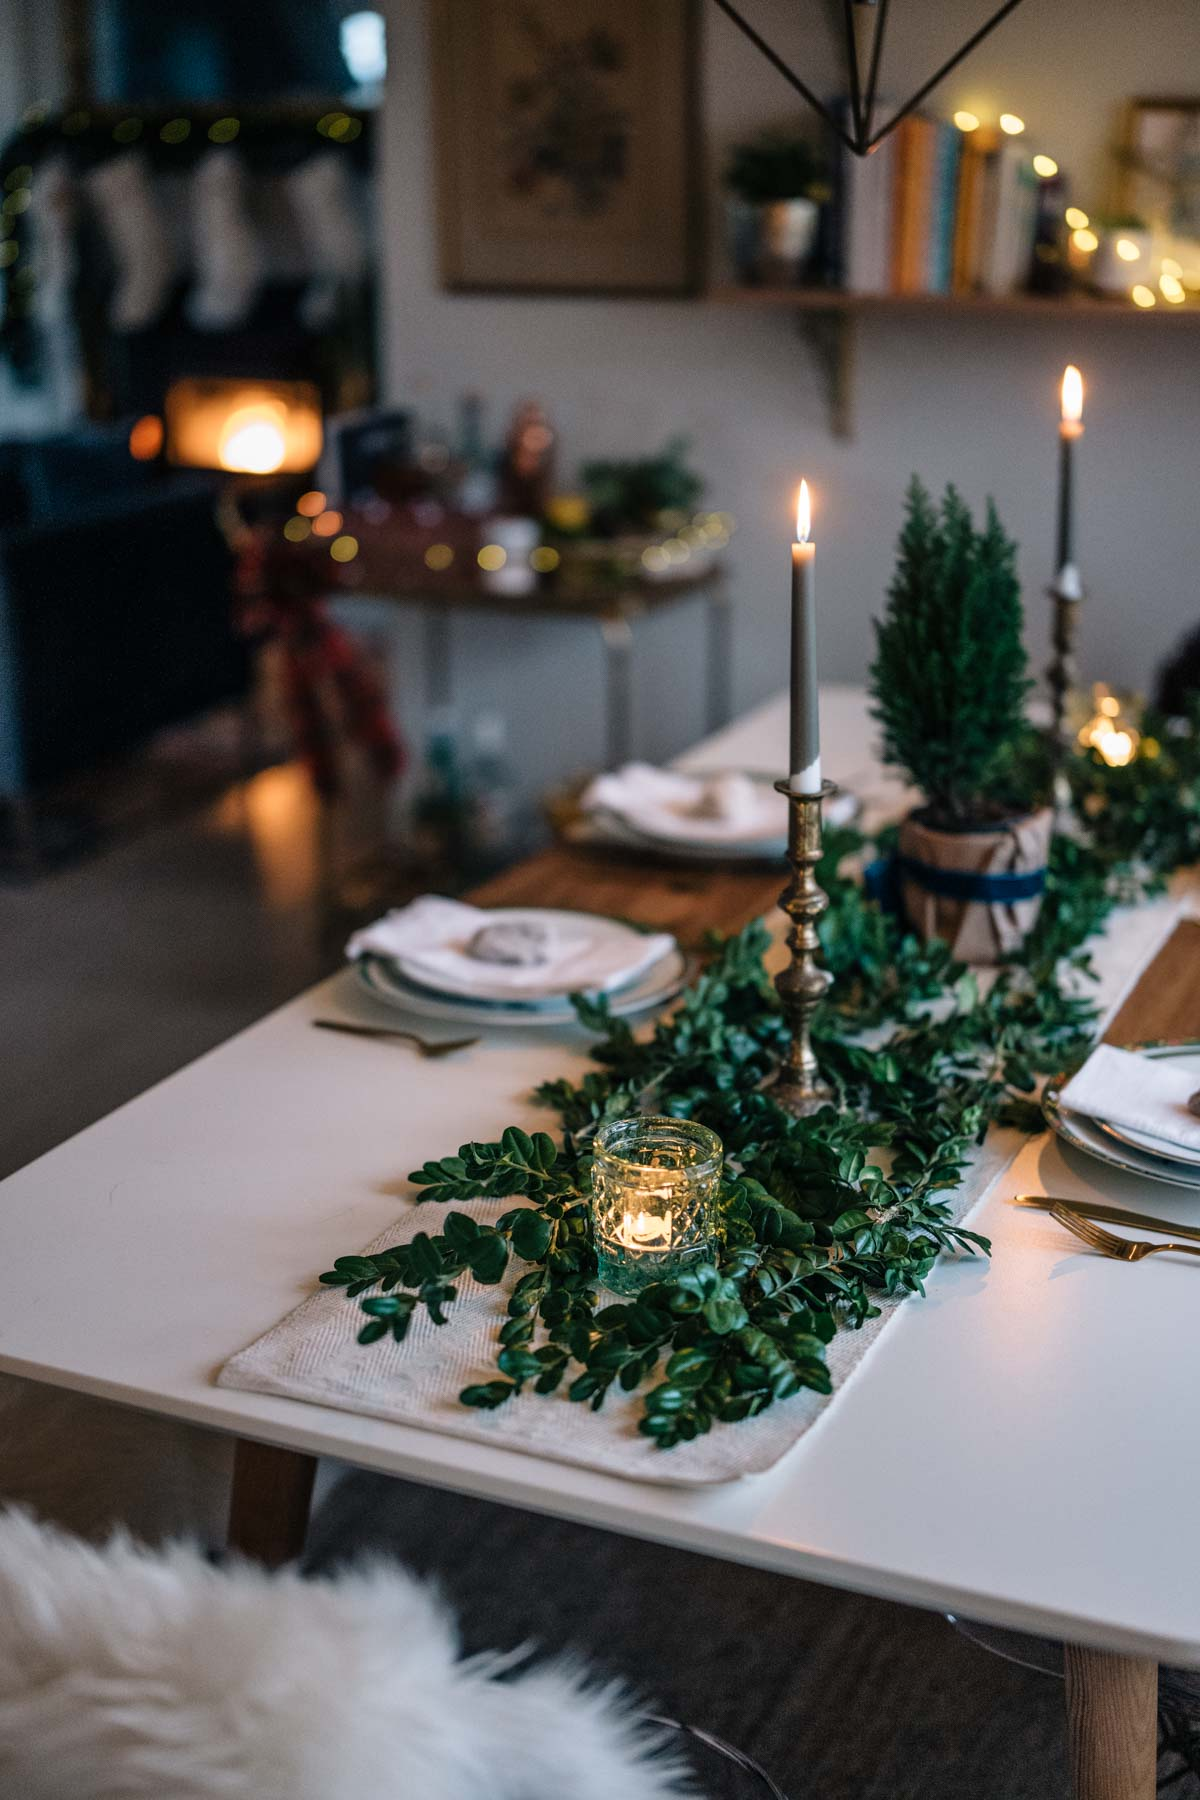 Jess Ann Kirby sets her dining table for the holidays with rustic and chic accents like gold decor and greenery